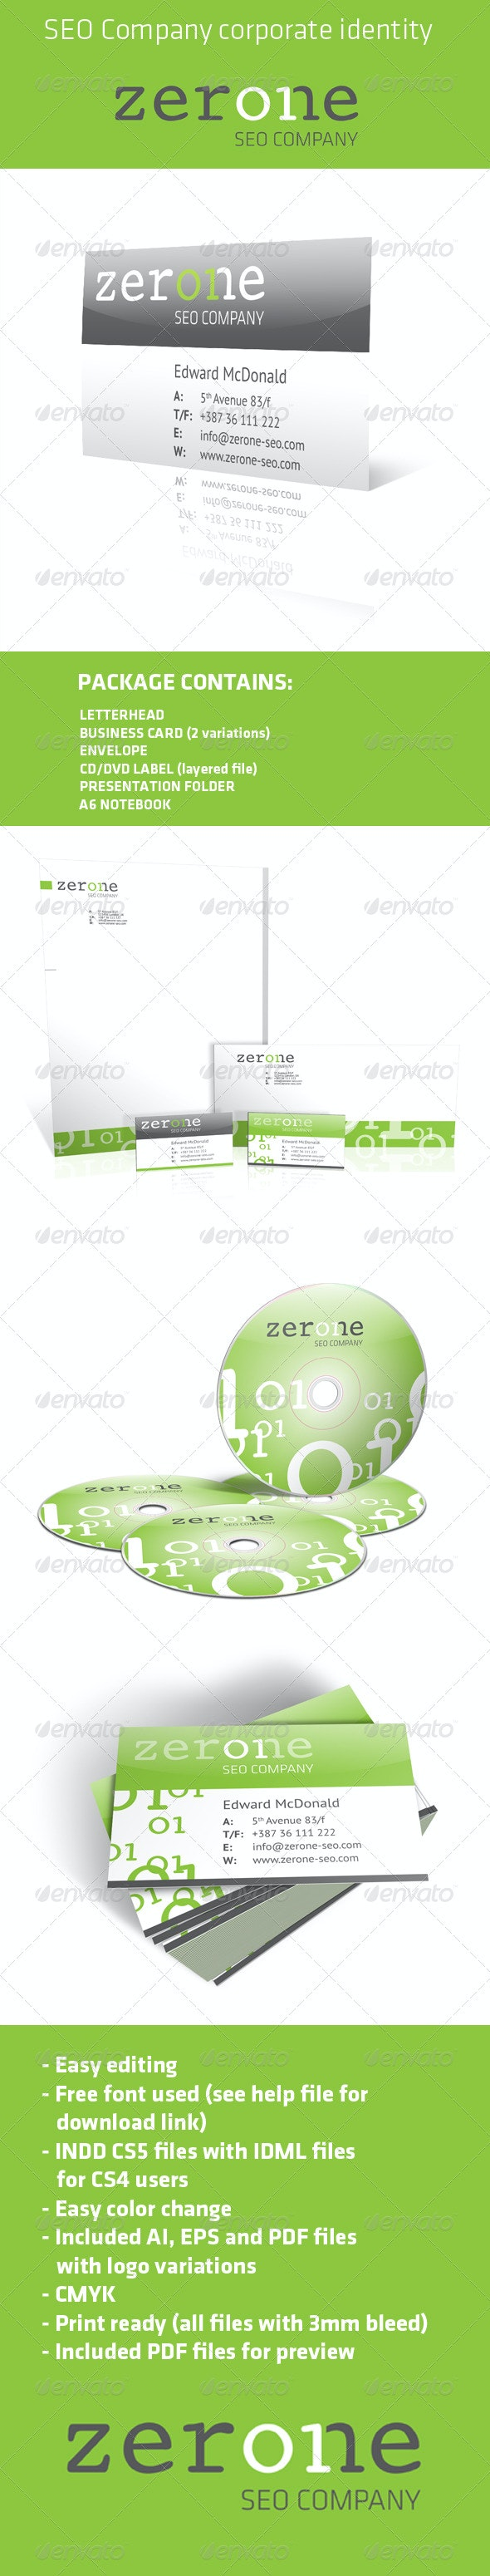 SEO Corporate identity pack - Stationery Print Templates